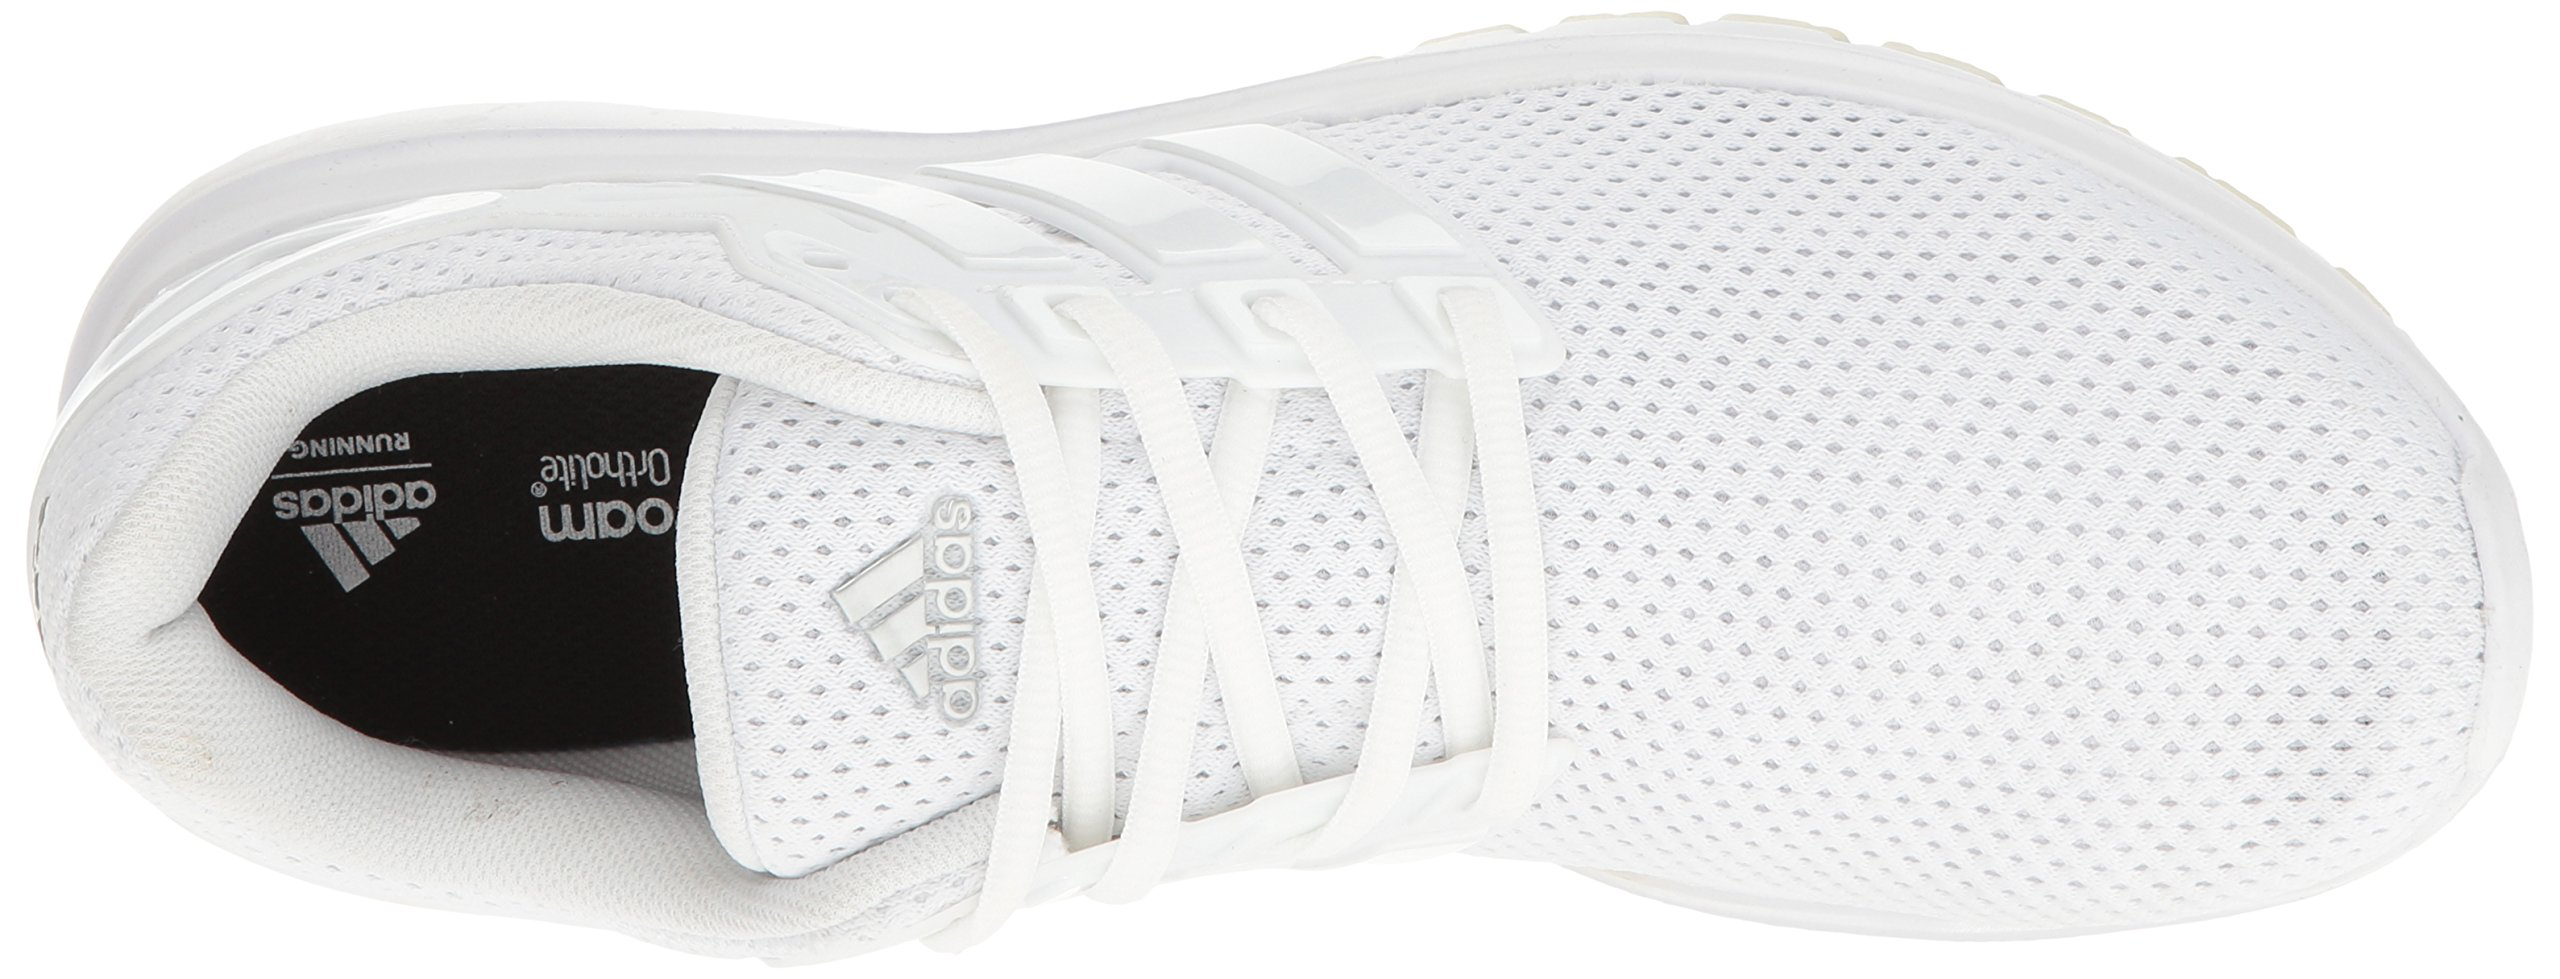 buy popular 45c48 5b476 adidas Mens Energy Cloud WTC m Running Shoe, WhiteWhiteWhite, 11 M US -  BY2207  Road Running  Clothing, Shoes  Jewelry - tibs